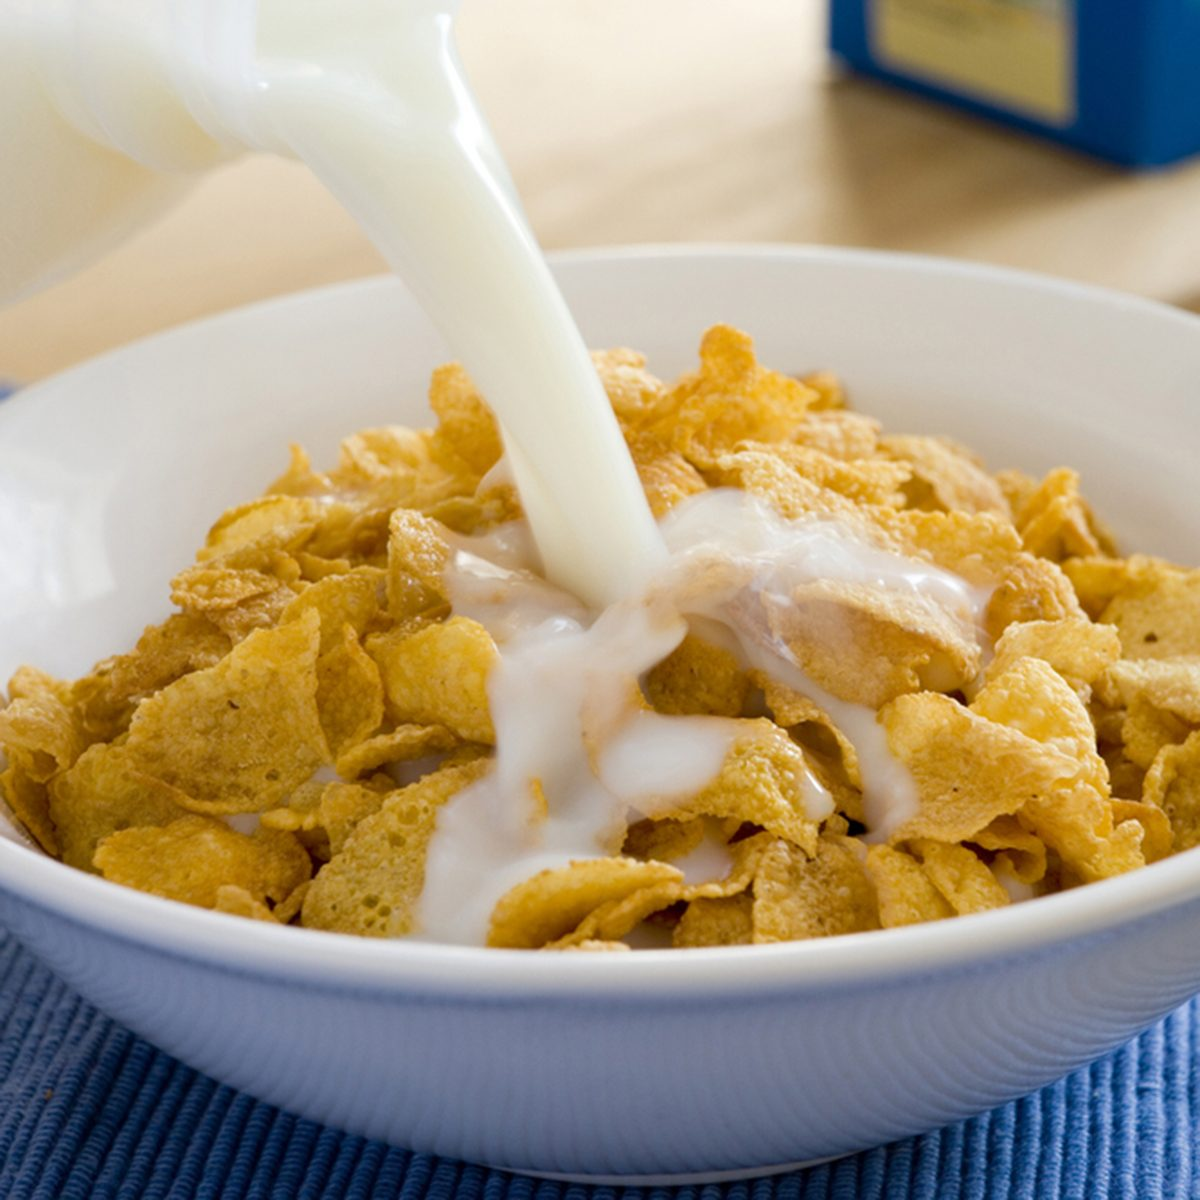 milk being poured into a bowl of cereal